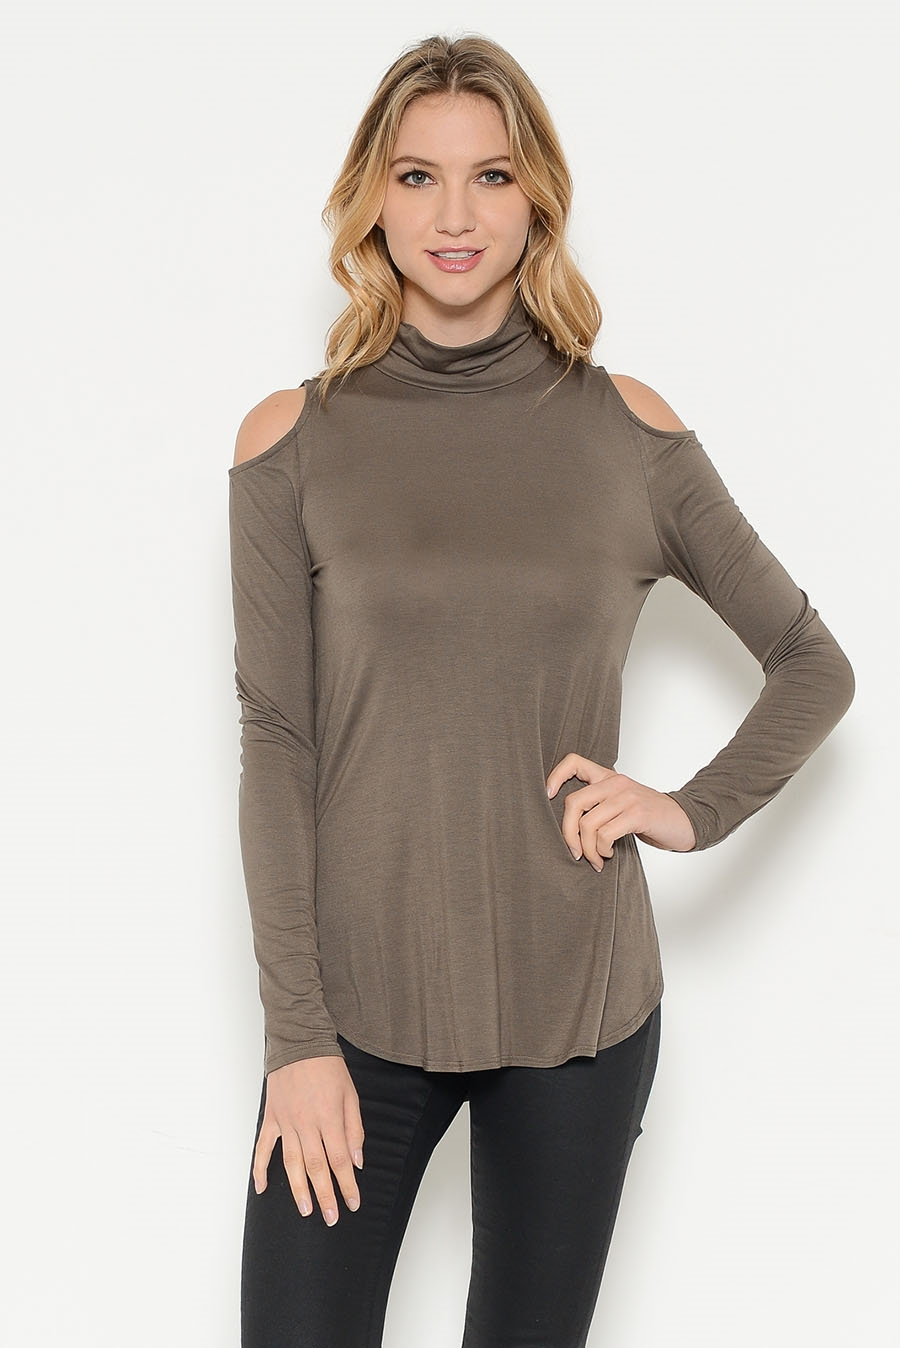 MOCK NECK OPEN SHOULDER TOP - orangeshine.com